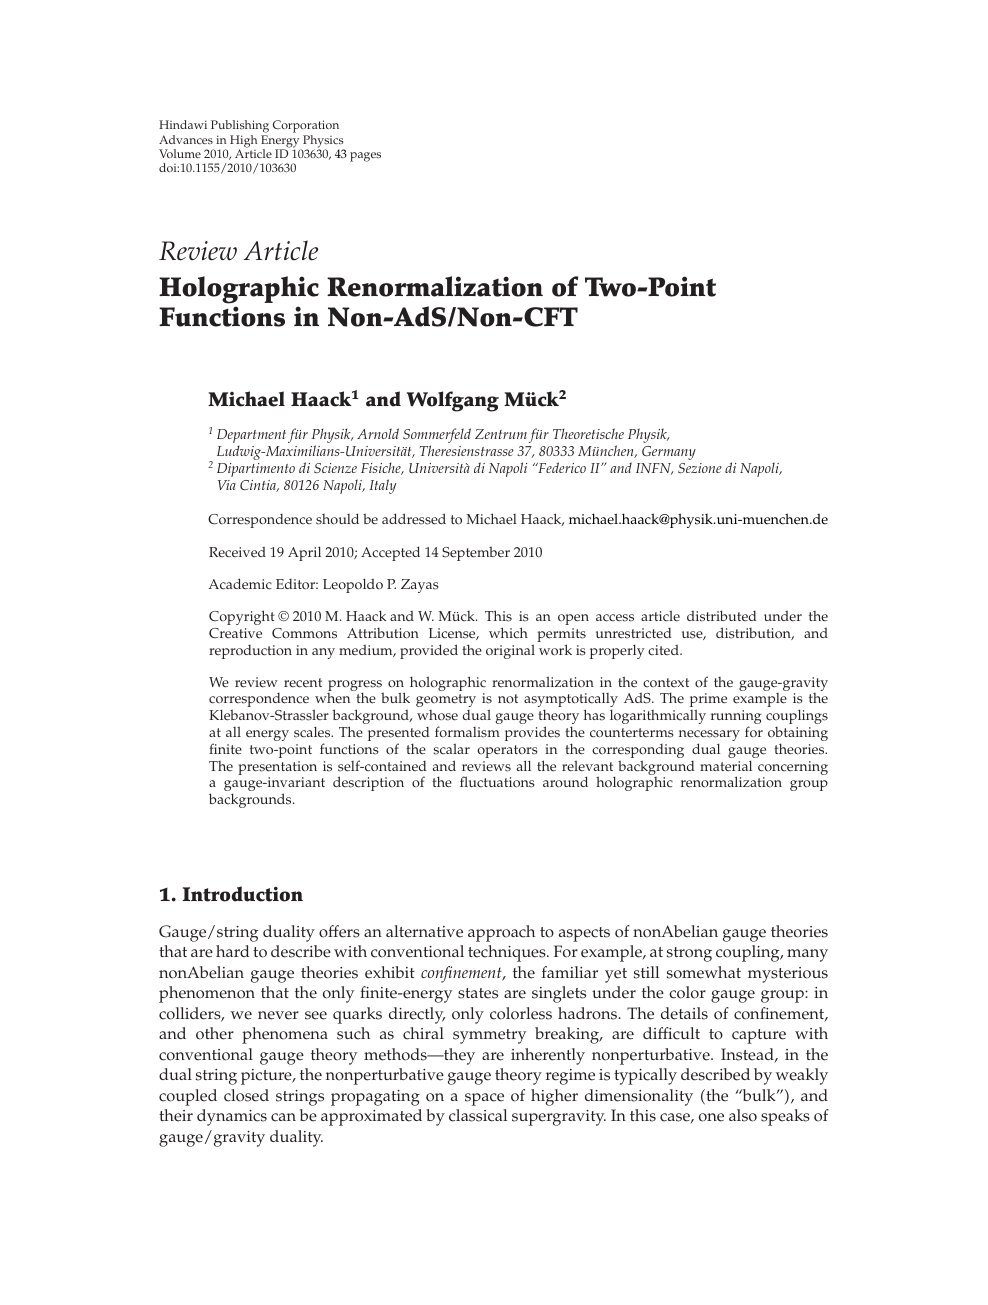 Holographic Renormalization of Two-Point Functions in Non